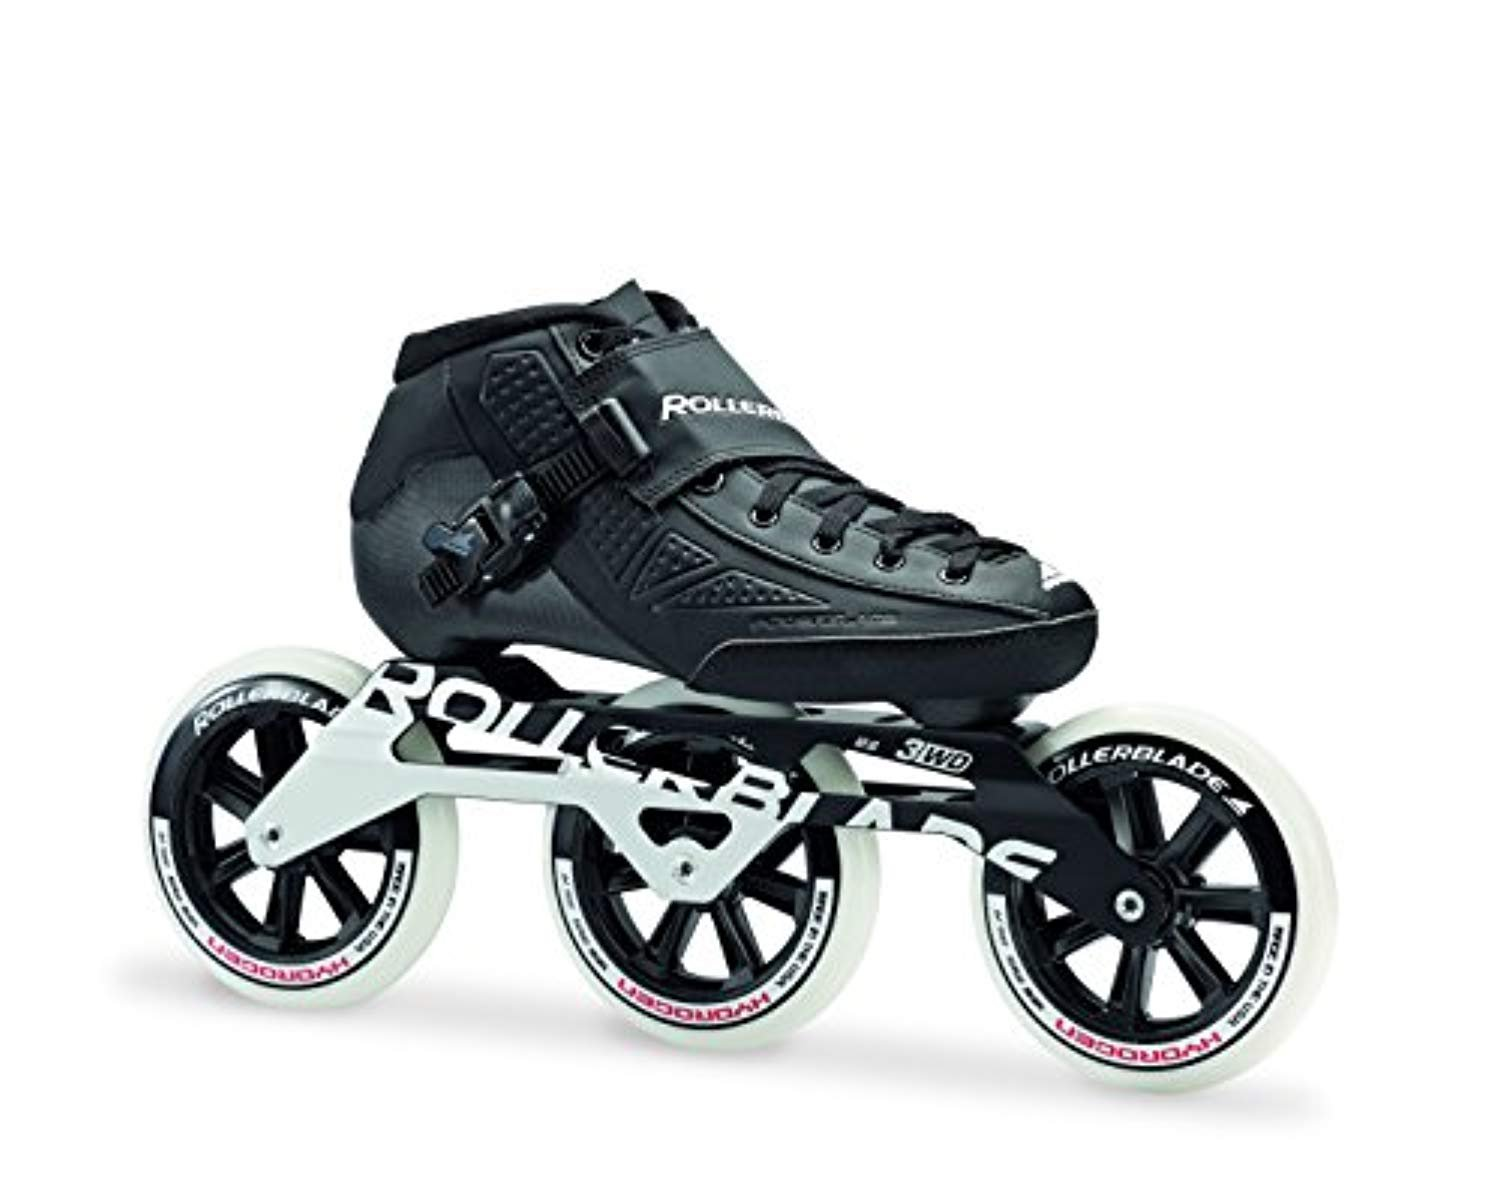 Rollerblade Powerblade Elite 125 Skates Black 26.5 & Headband Bundle